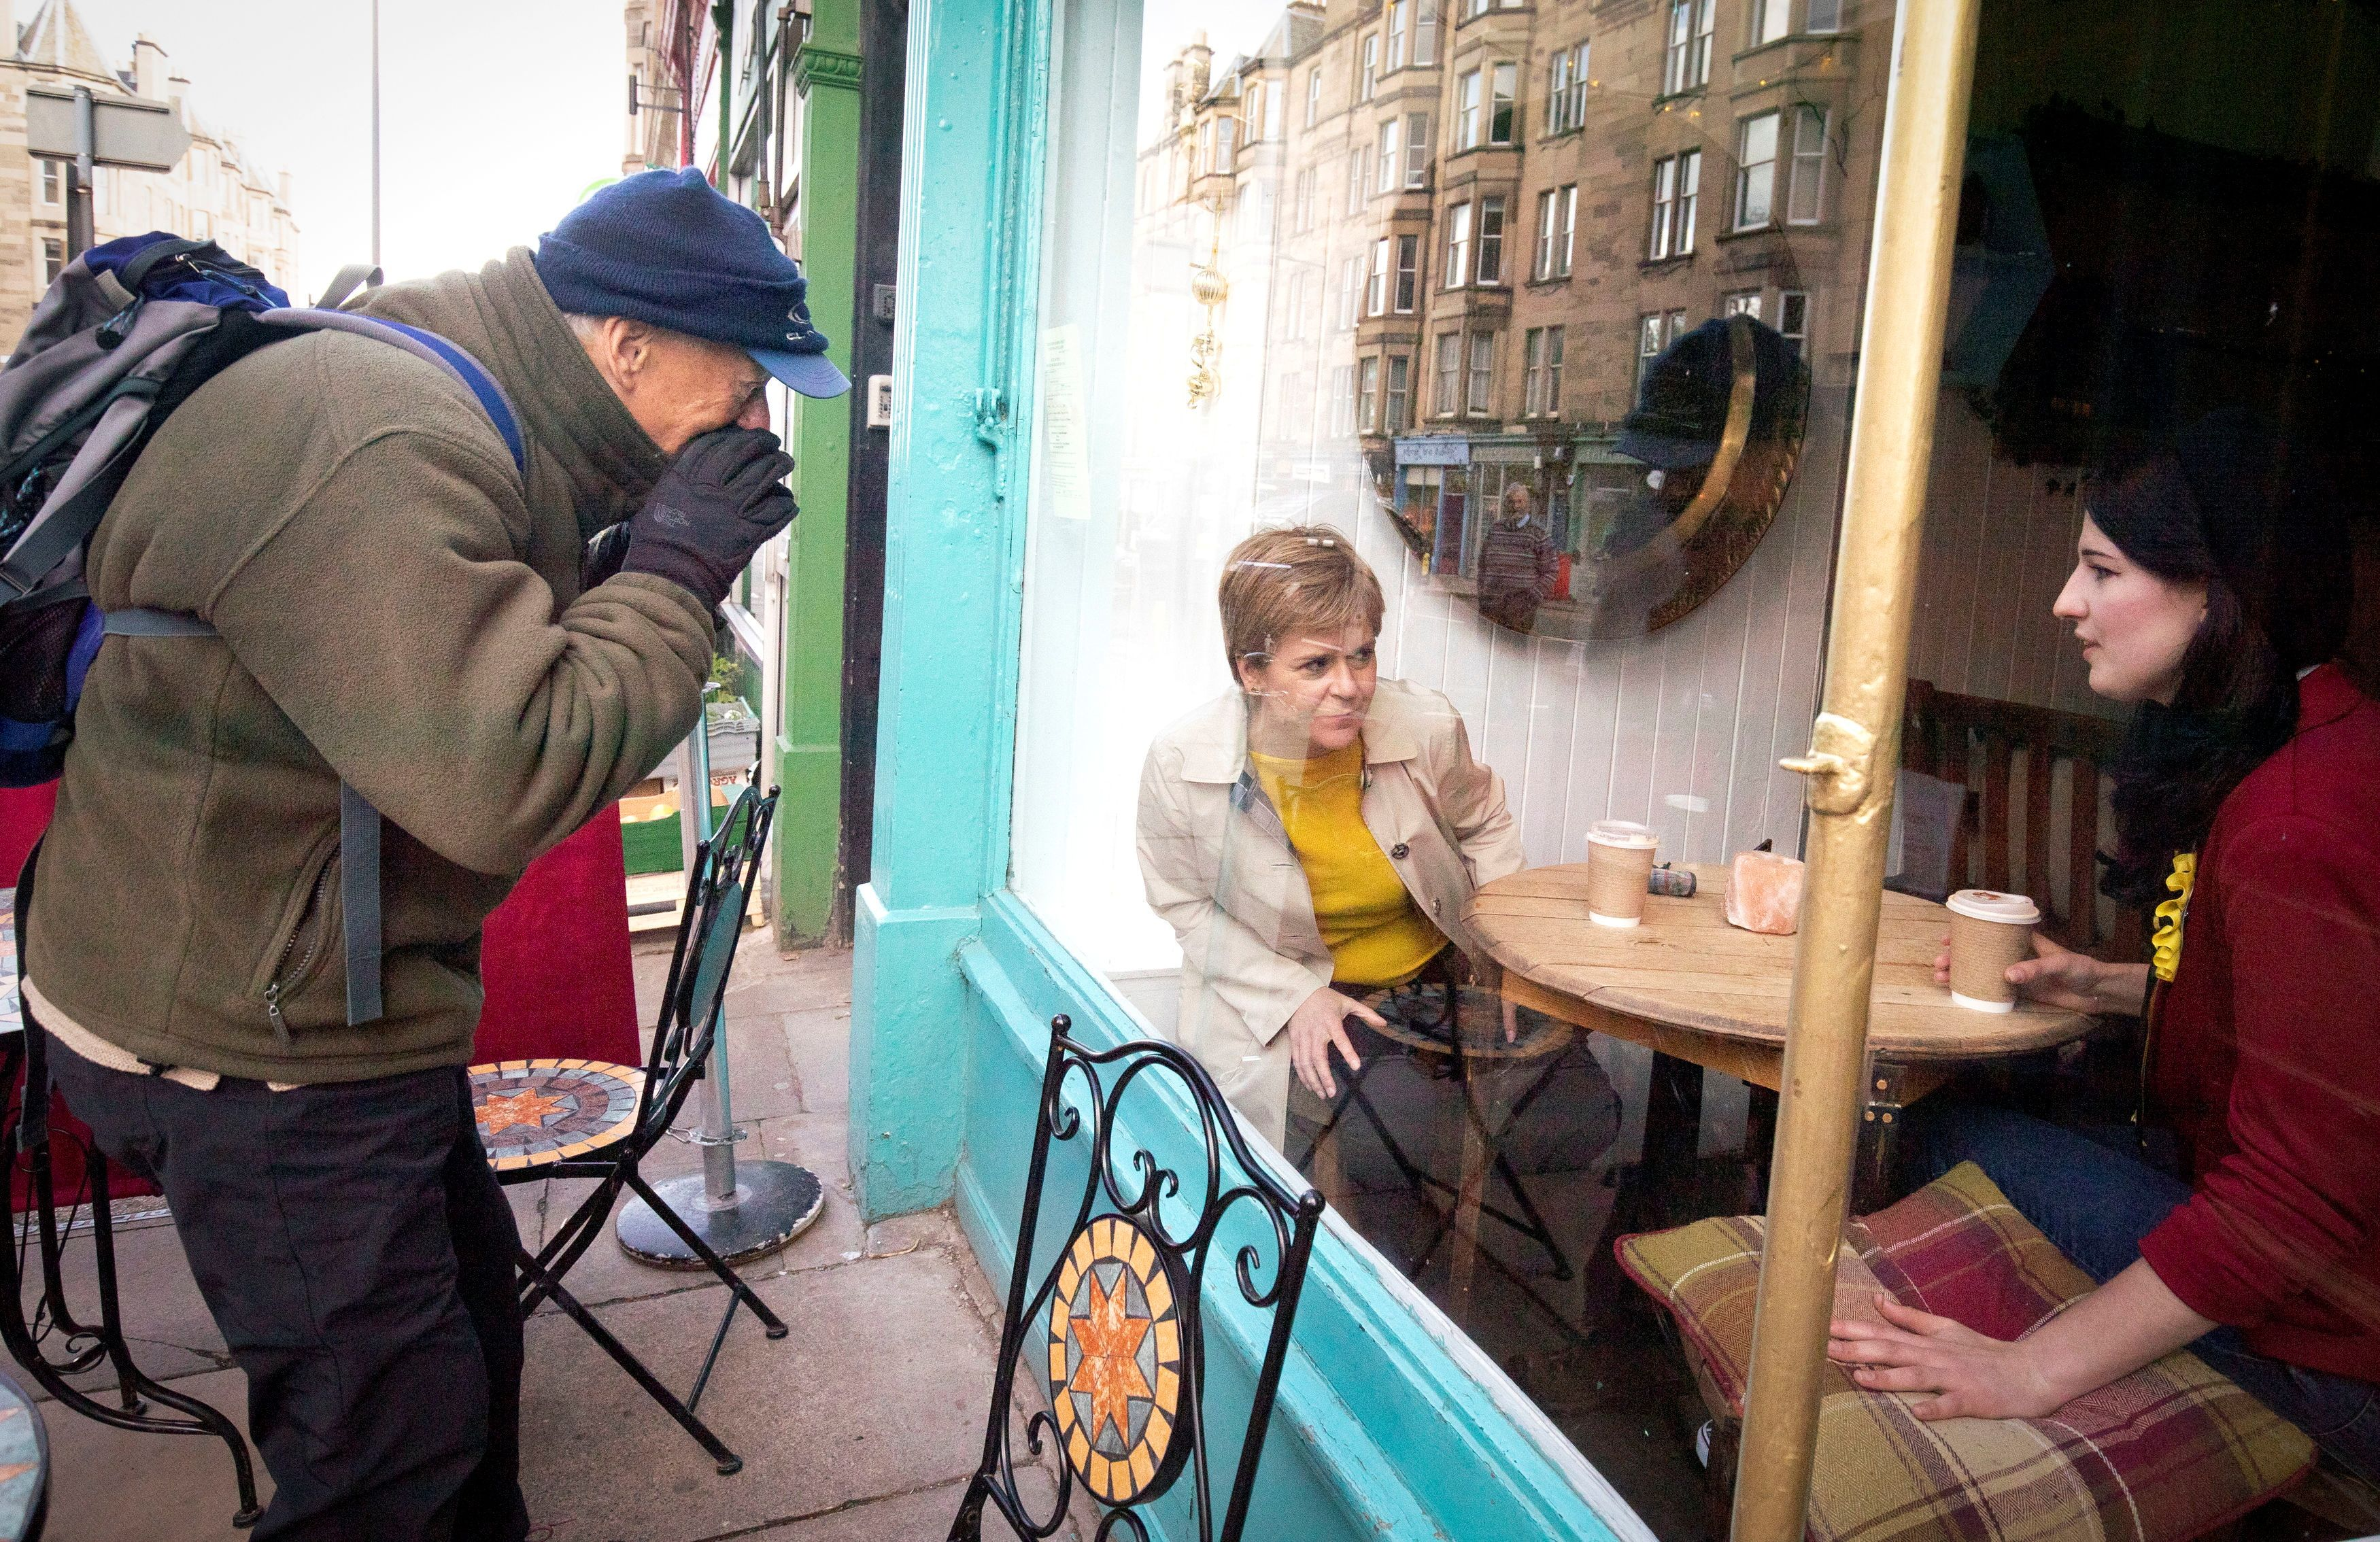 A member of the public tries to speak with Scotland's First Minister and leader of the Scottish National Party (SNP), Nicola Sturgeon, through a coffee shop window as she campaigns for the Scottish parliamentary election in Edinburgh, Britain, April 30, 2021. Jane Barlow/Pool via REUTERS